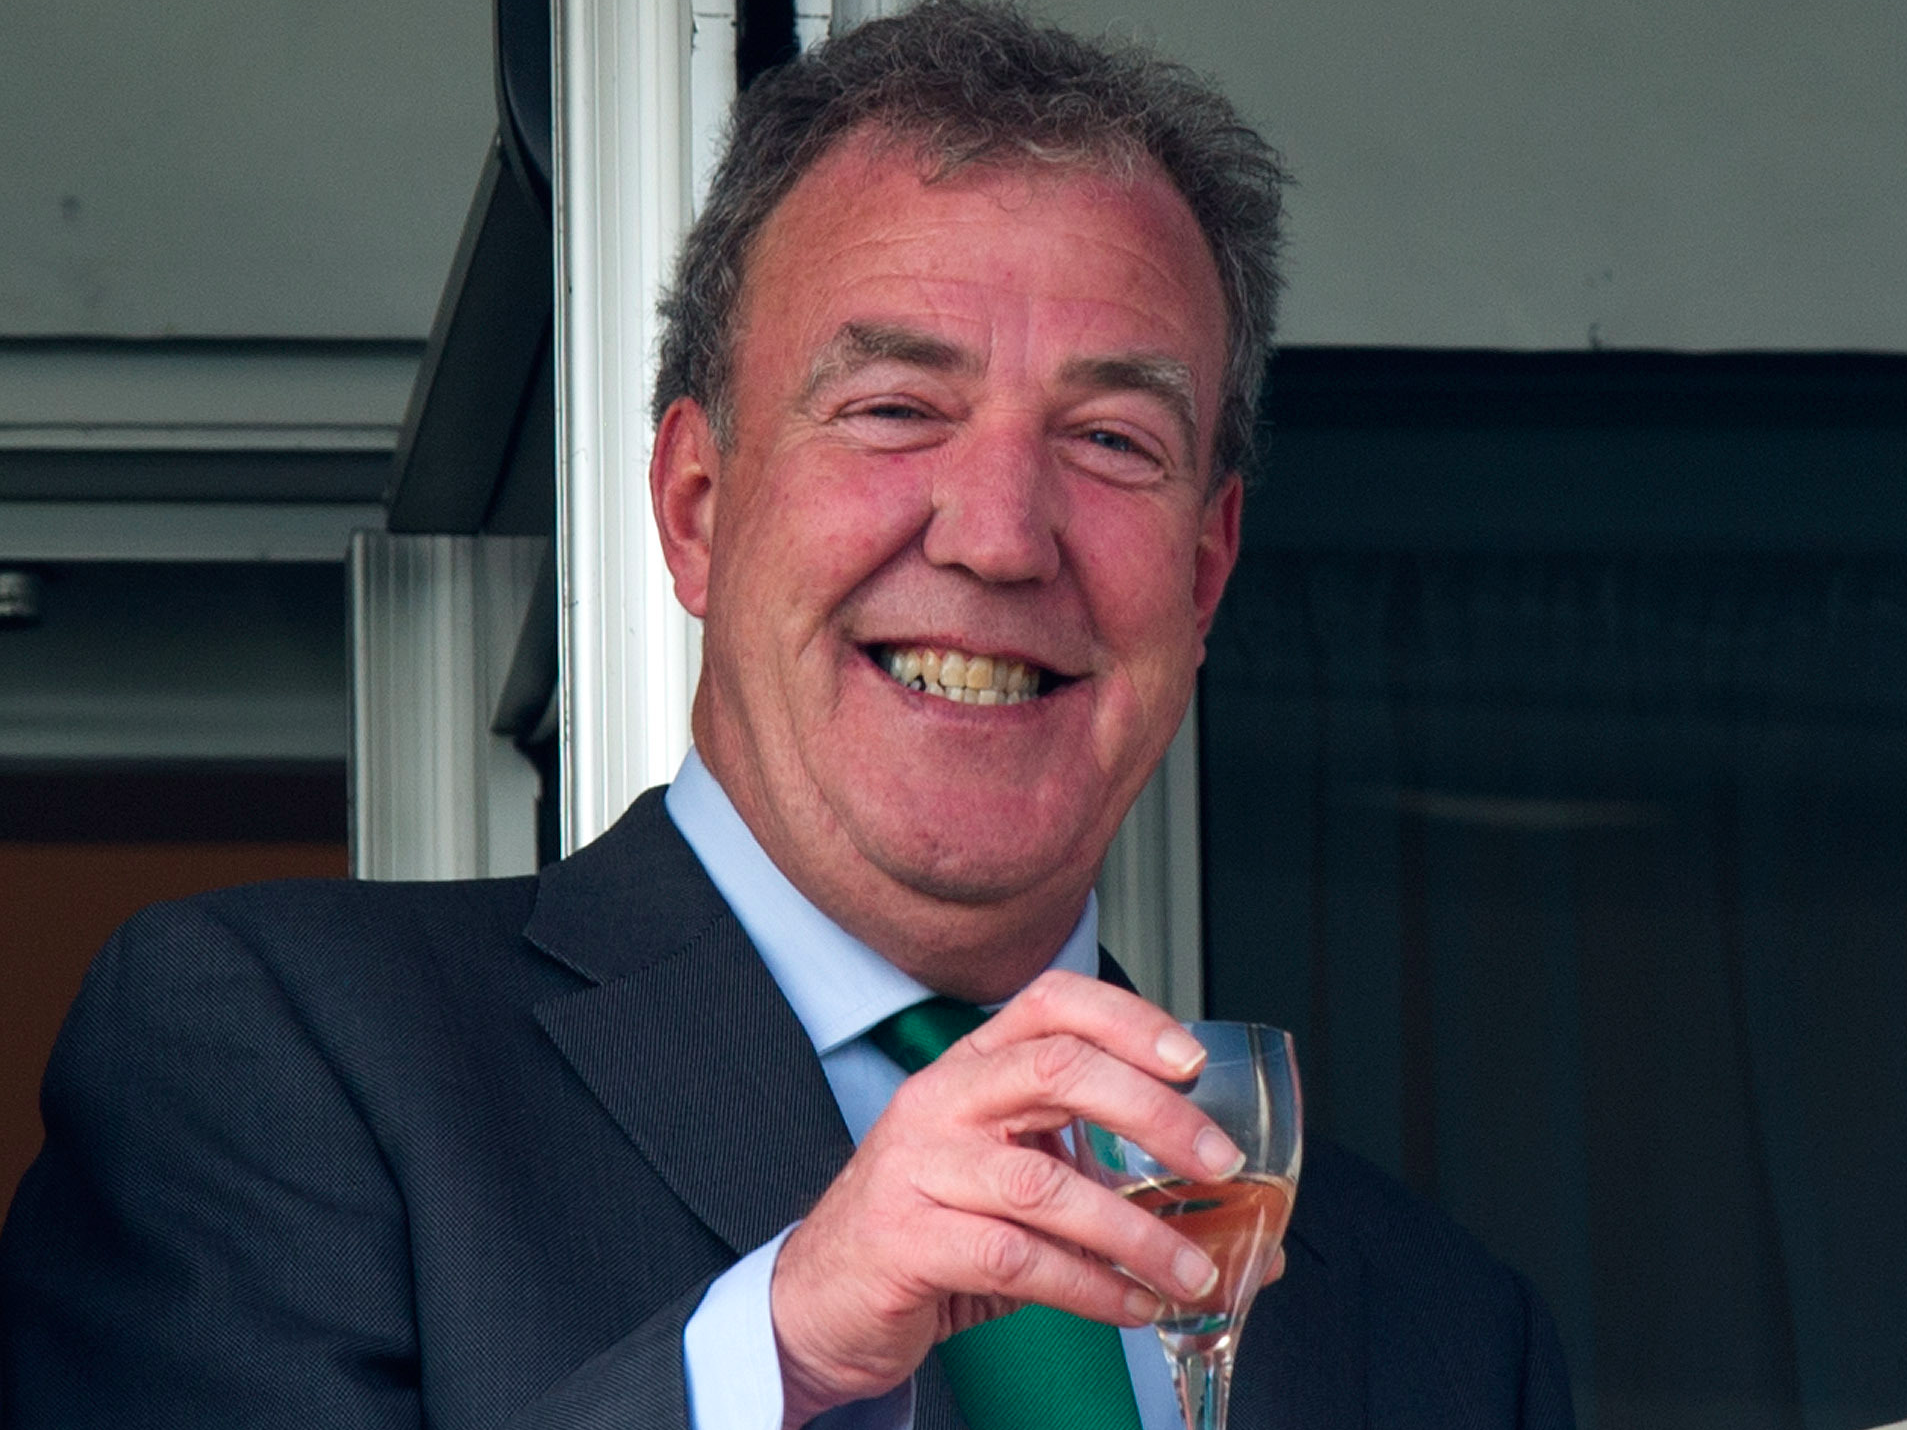 celebs with the worst teeth jeremy clarkson